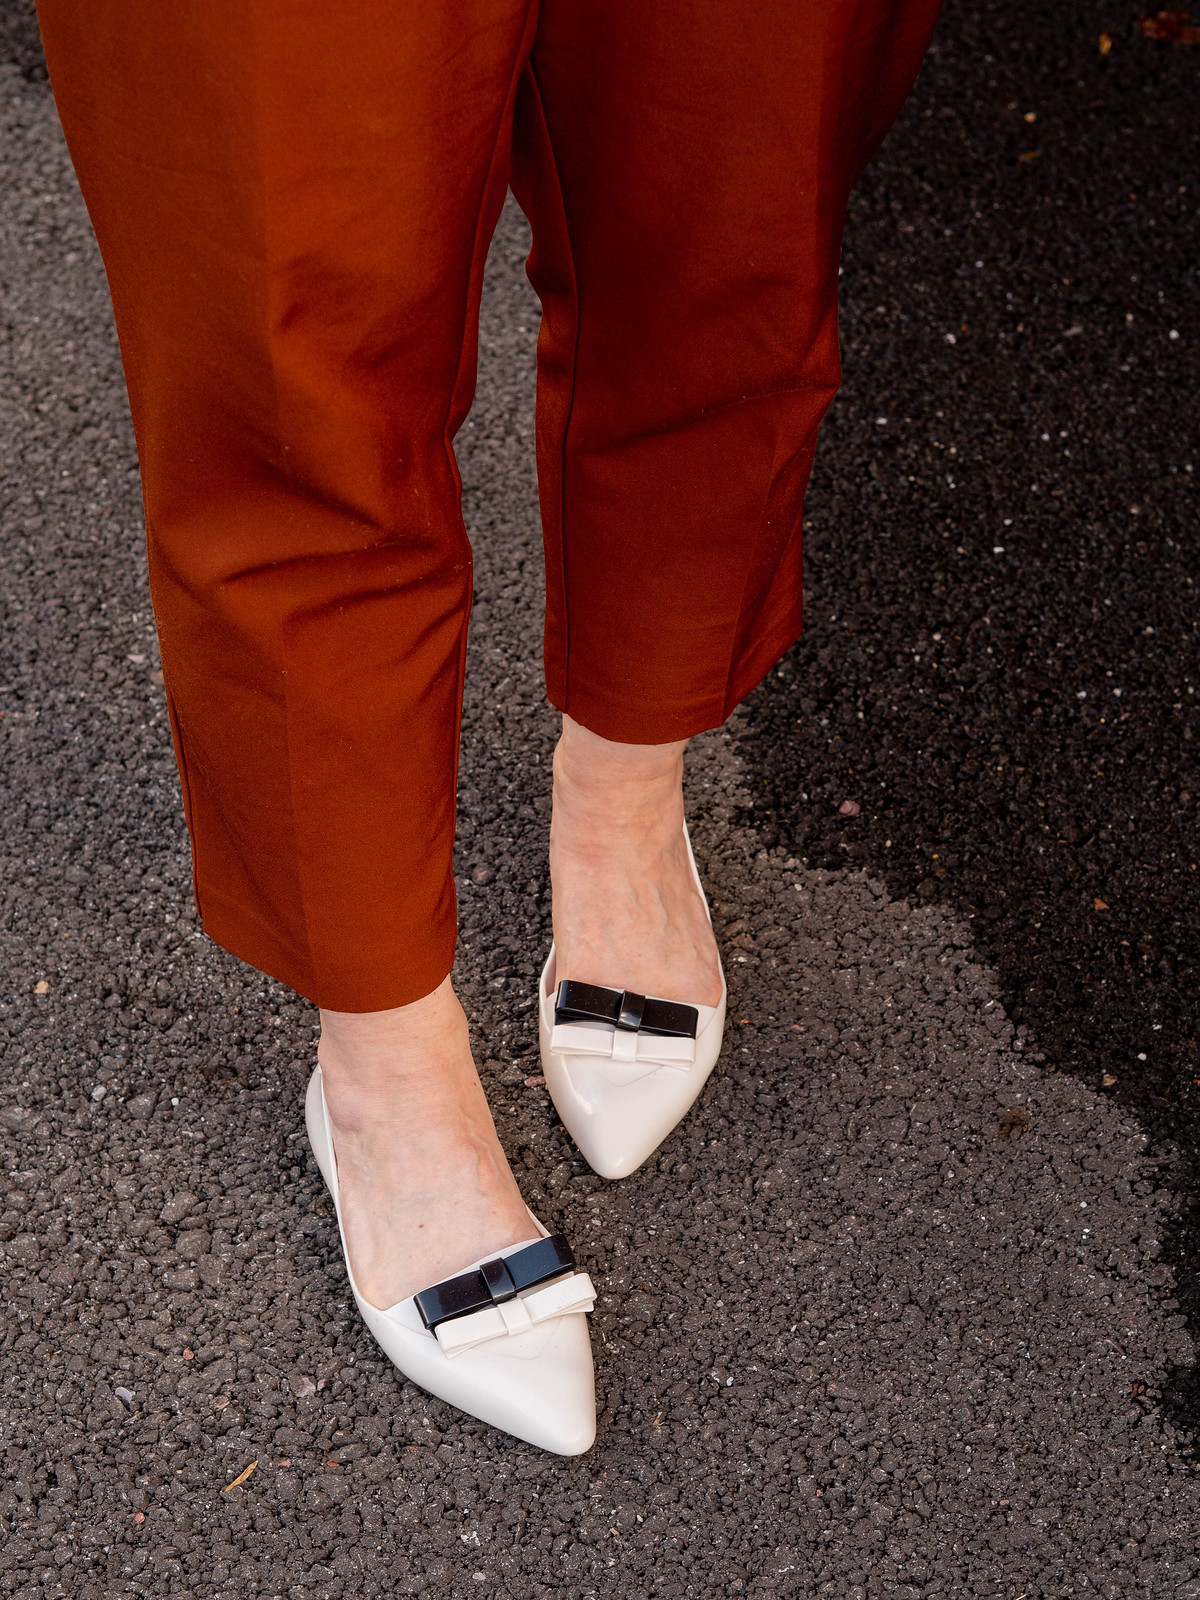 Styling a Vintage 70s Shirt With Vintage Jewellery: Catherine Summers is wearing an orange, green and brown patterned vintage 70s shirt with gold jewellery, brown paperbag trousers, pointed flats & oversized sunglasses   Not Dressed As Lamb, Over 40 Style